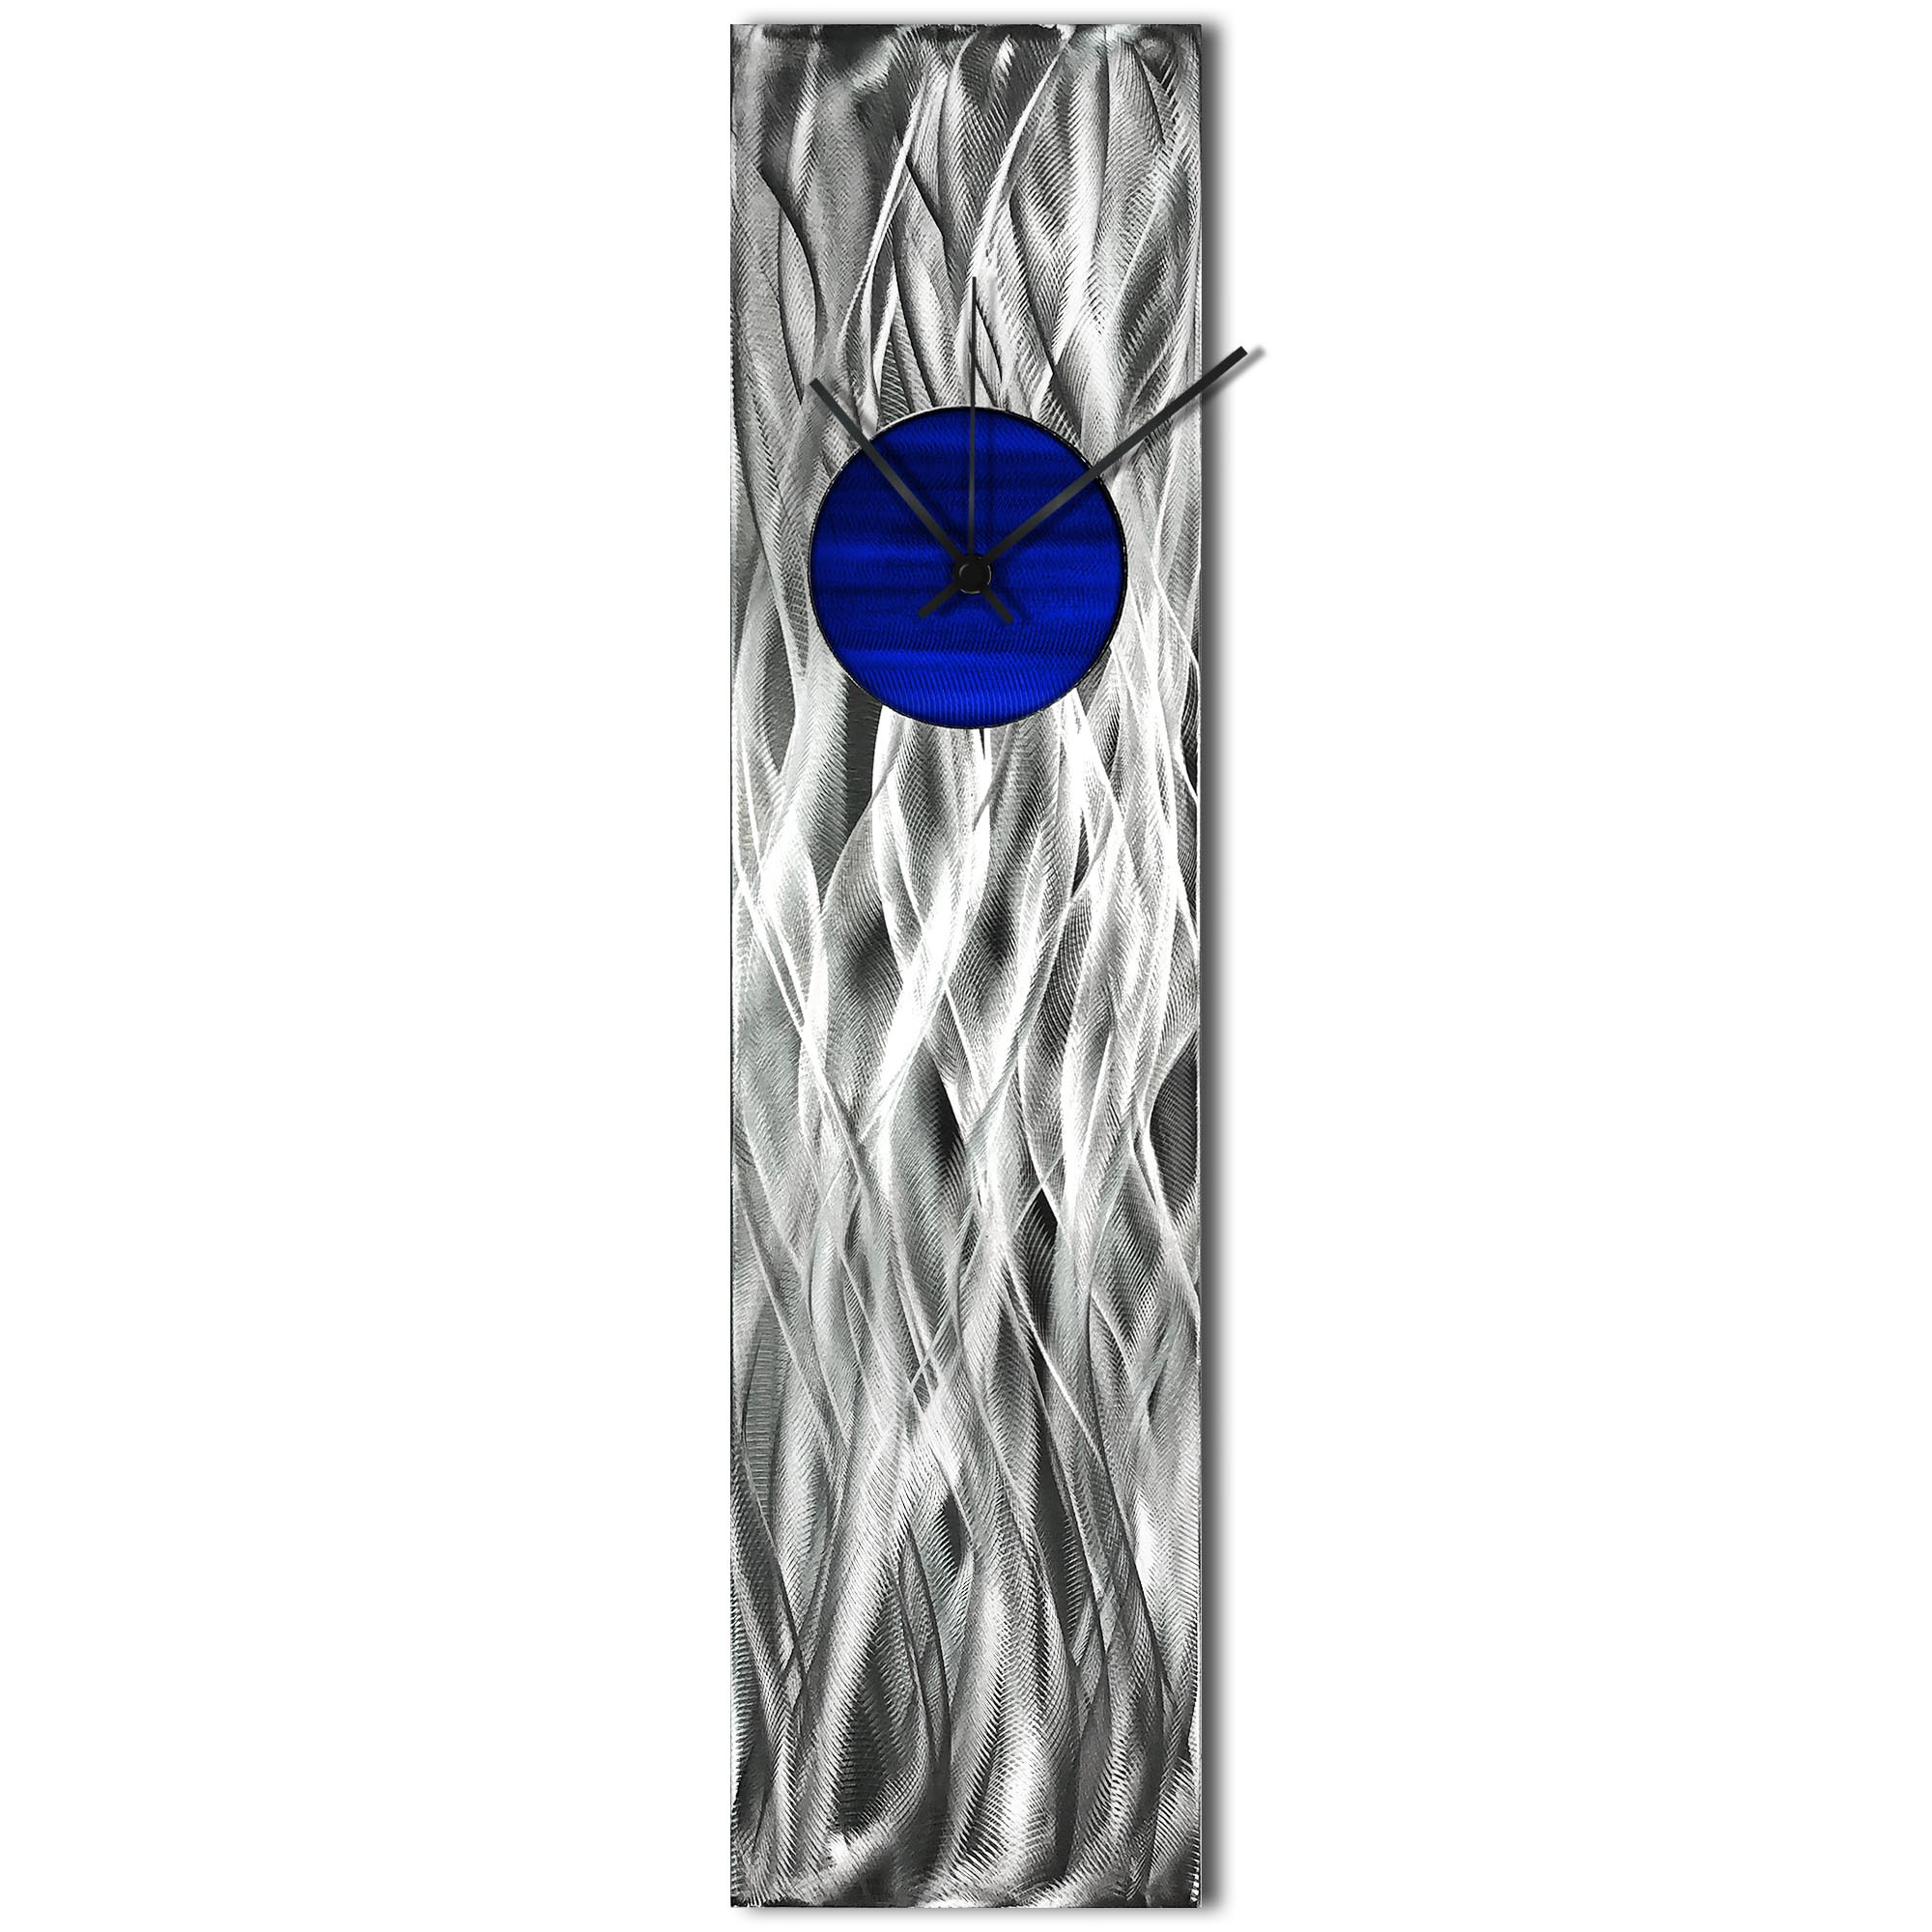 Helena Martin 'Waves Relief Clock Blue' 6in x 24in Modern Wall Clock on Ground and Painted Metal